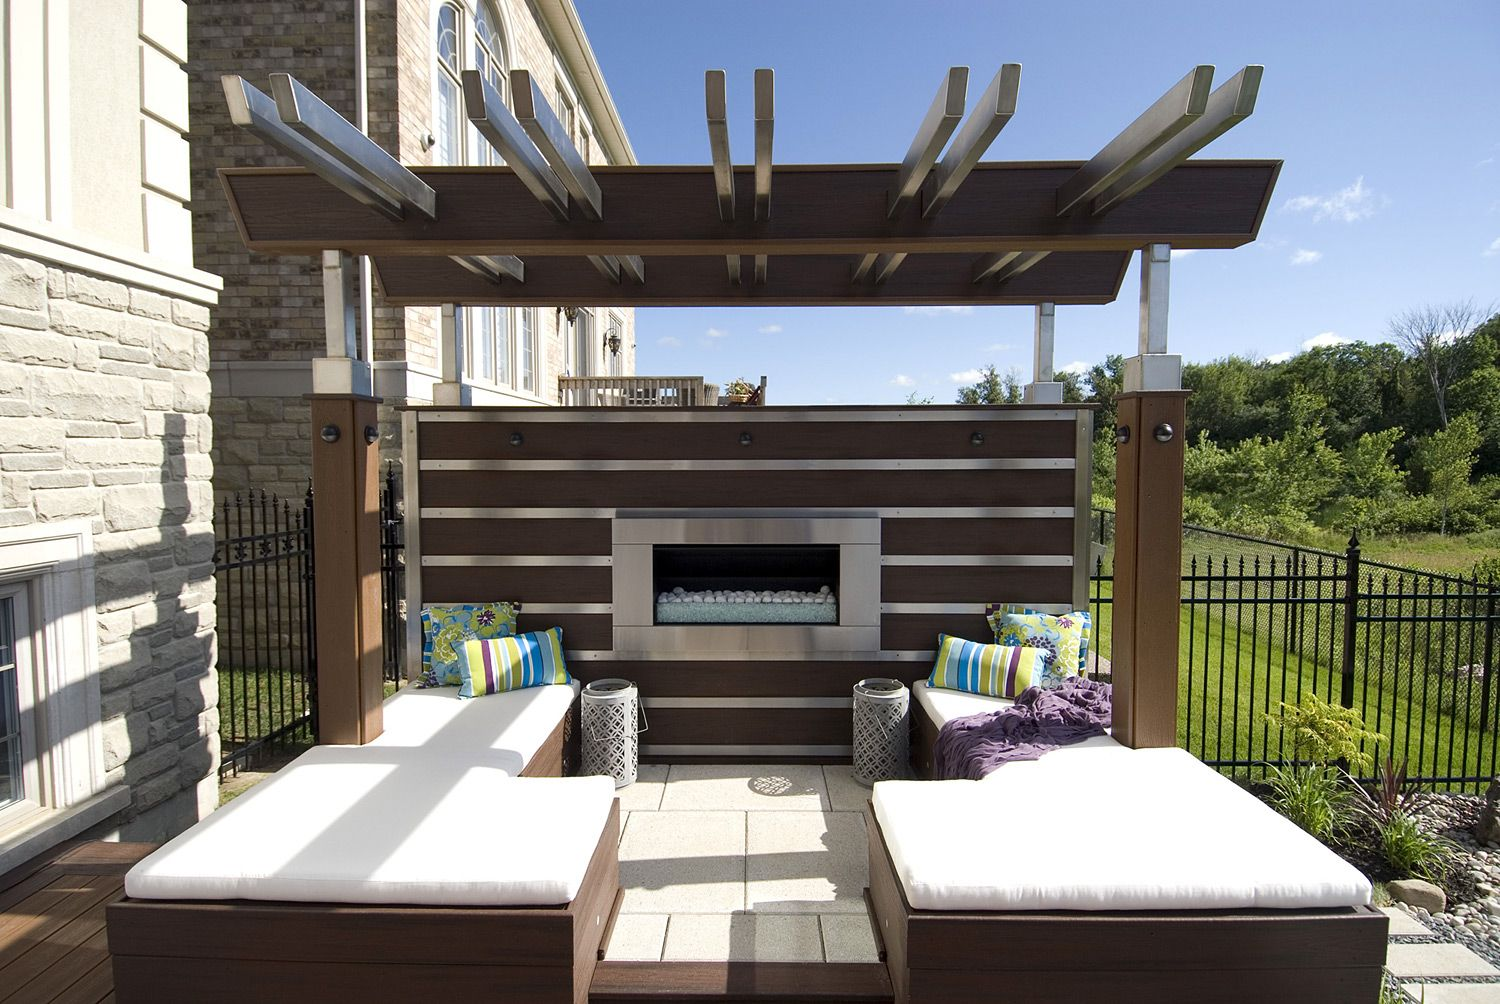 "With two stainless steel pergolas, this deck is a stunner. From ""Decked  Out"" project ""The Fireplace Deck"". Deck Design by Paul Lafrance Design. - With Two Stainless Steel Pergolas, This Deck Is A Stunner. From"